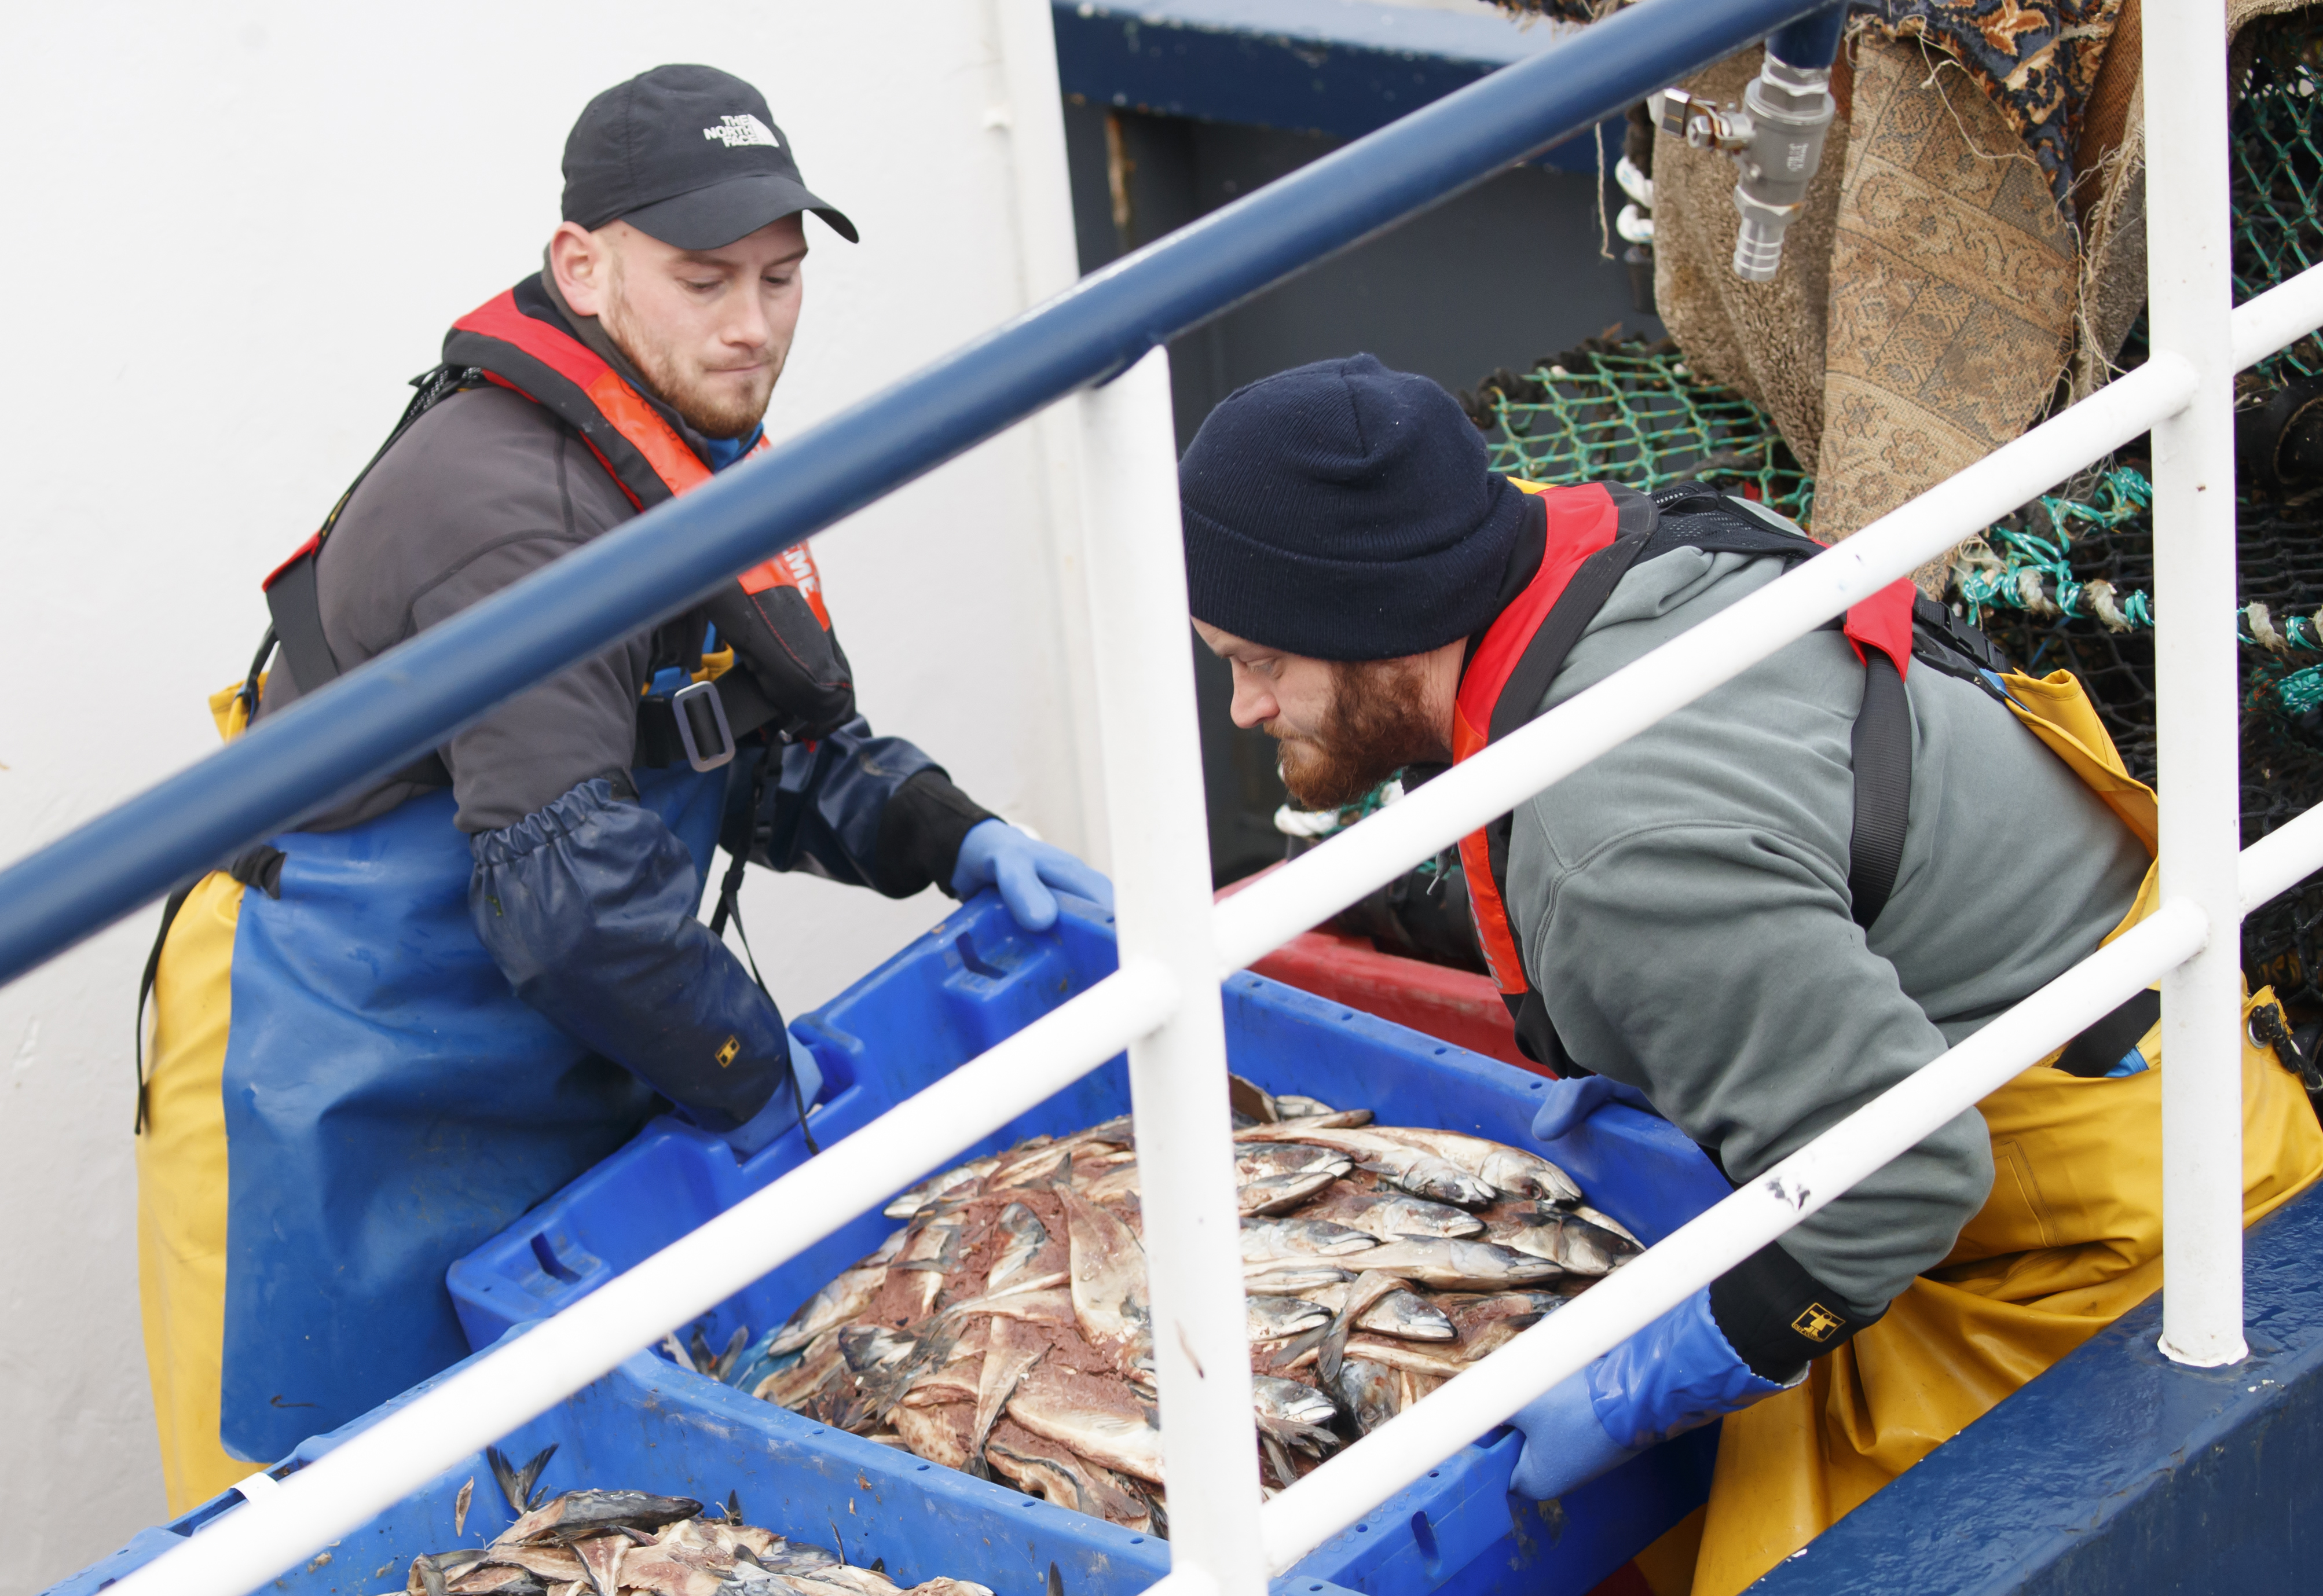 Exports of fish and seafood have been hit by delays